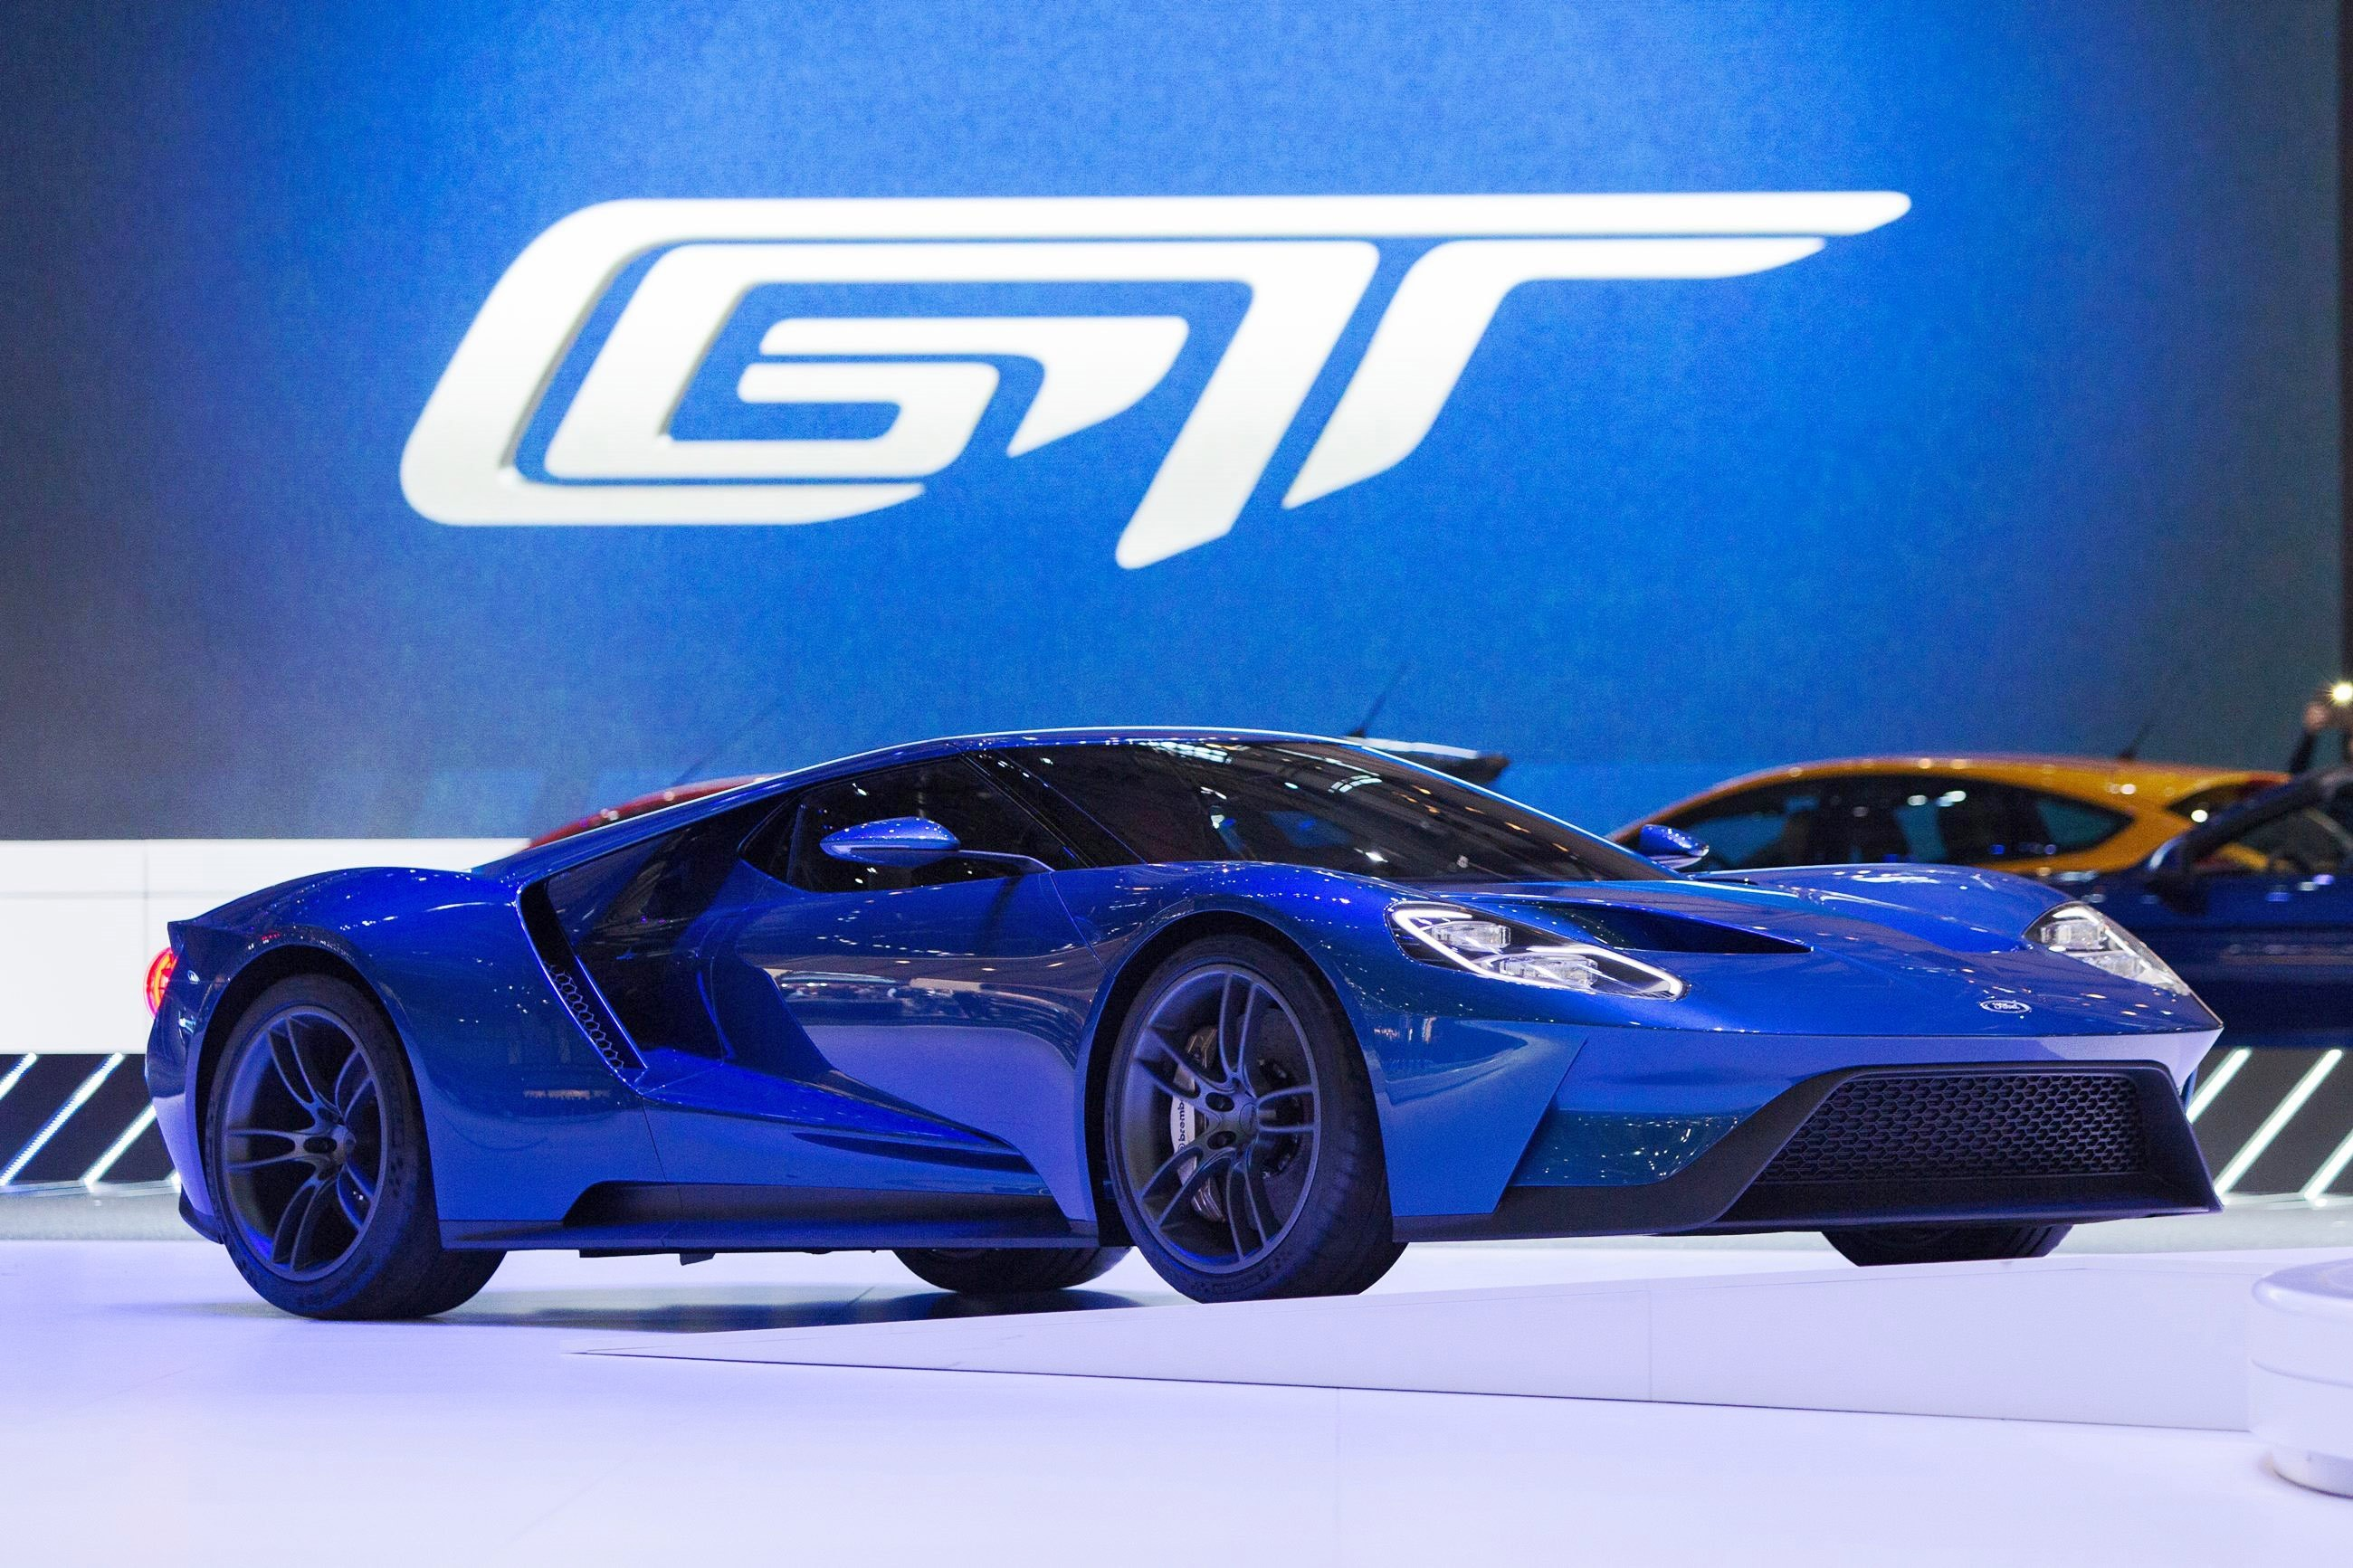 ford gt daily revs colors visualizer digital latest burkart tom expanding managing innovative rapidly founder editor geneva europe